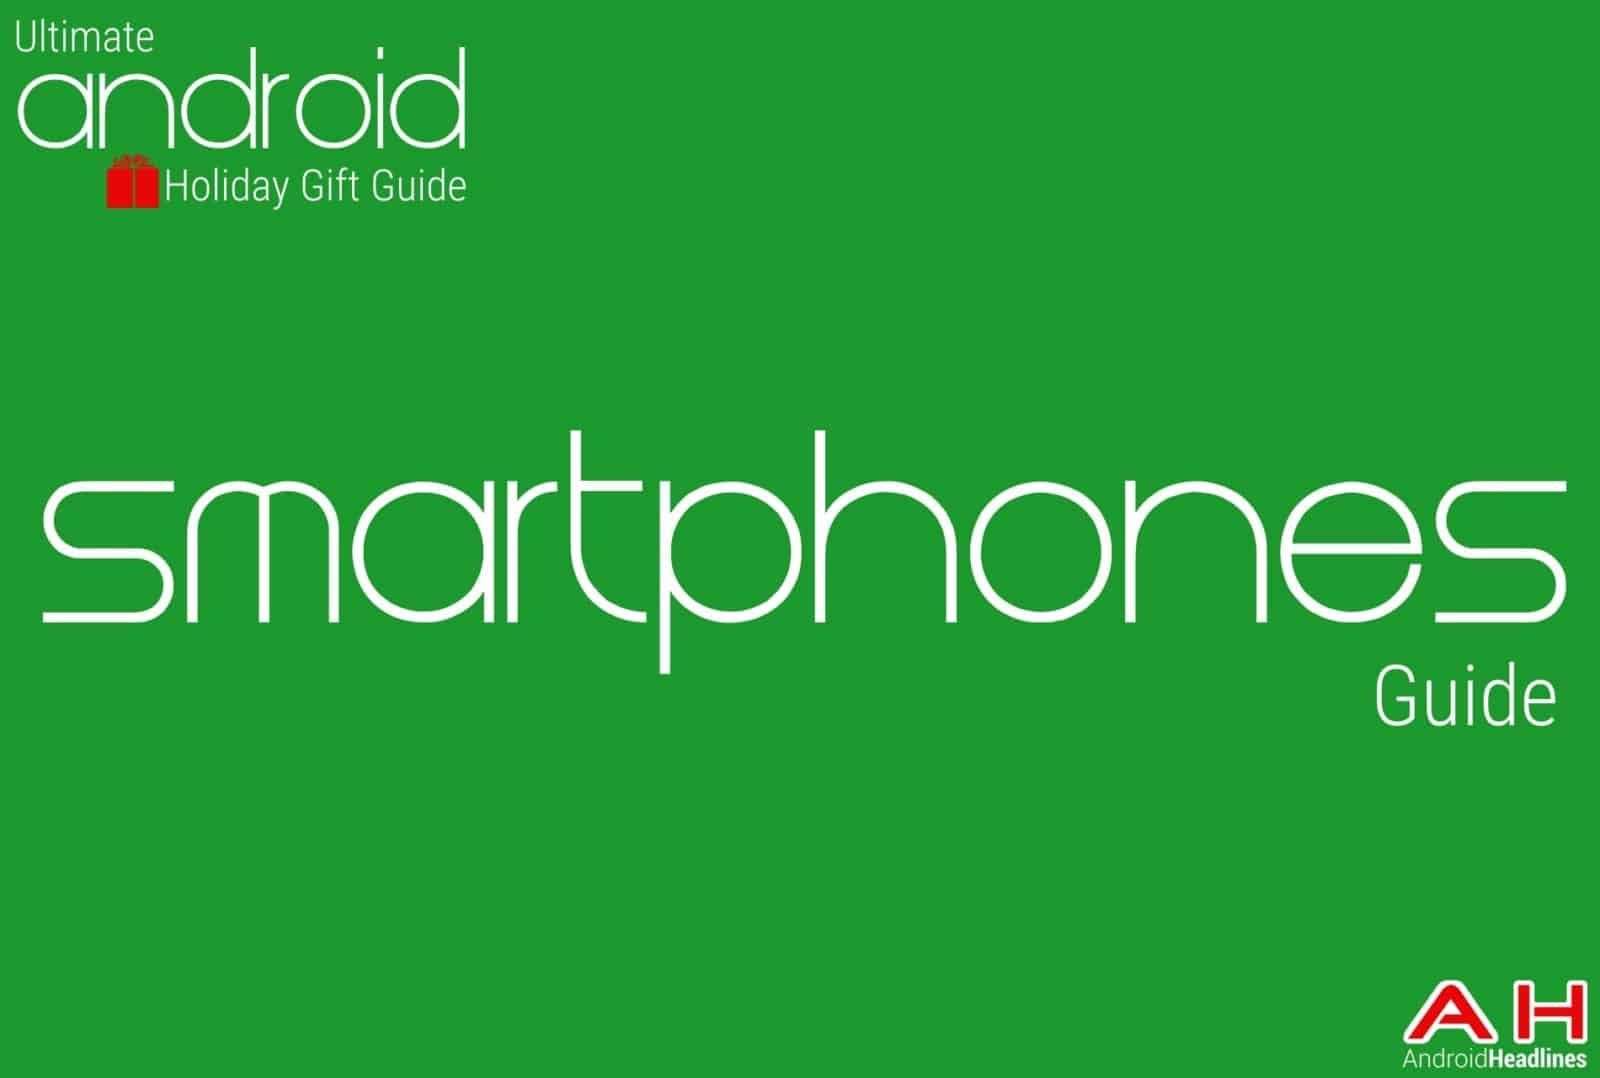 Android Smartphones Guide - Holiday Gift Guide Main Image